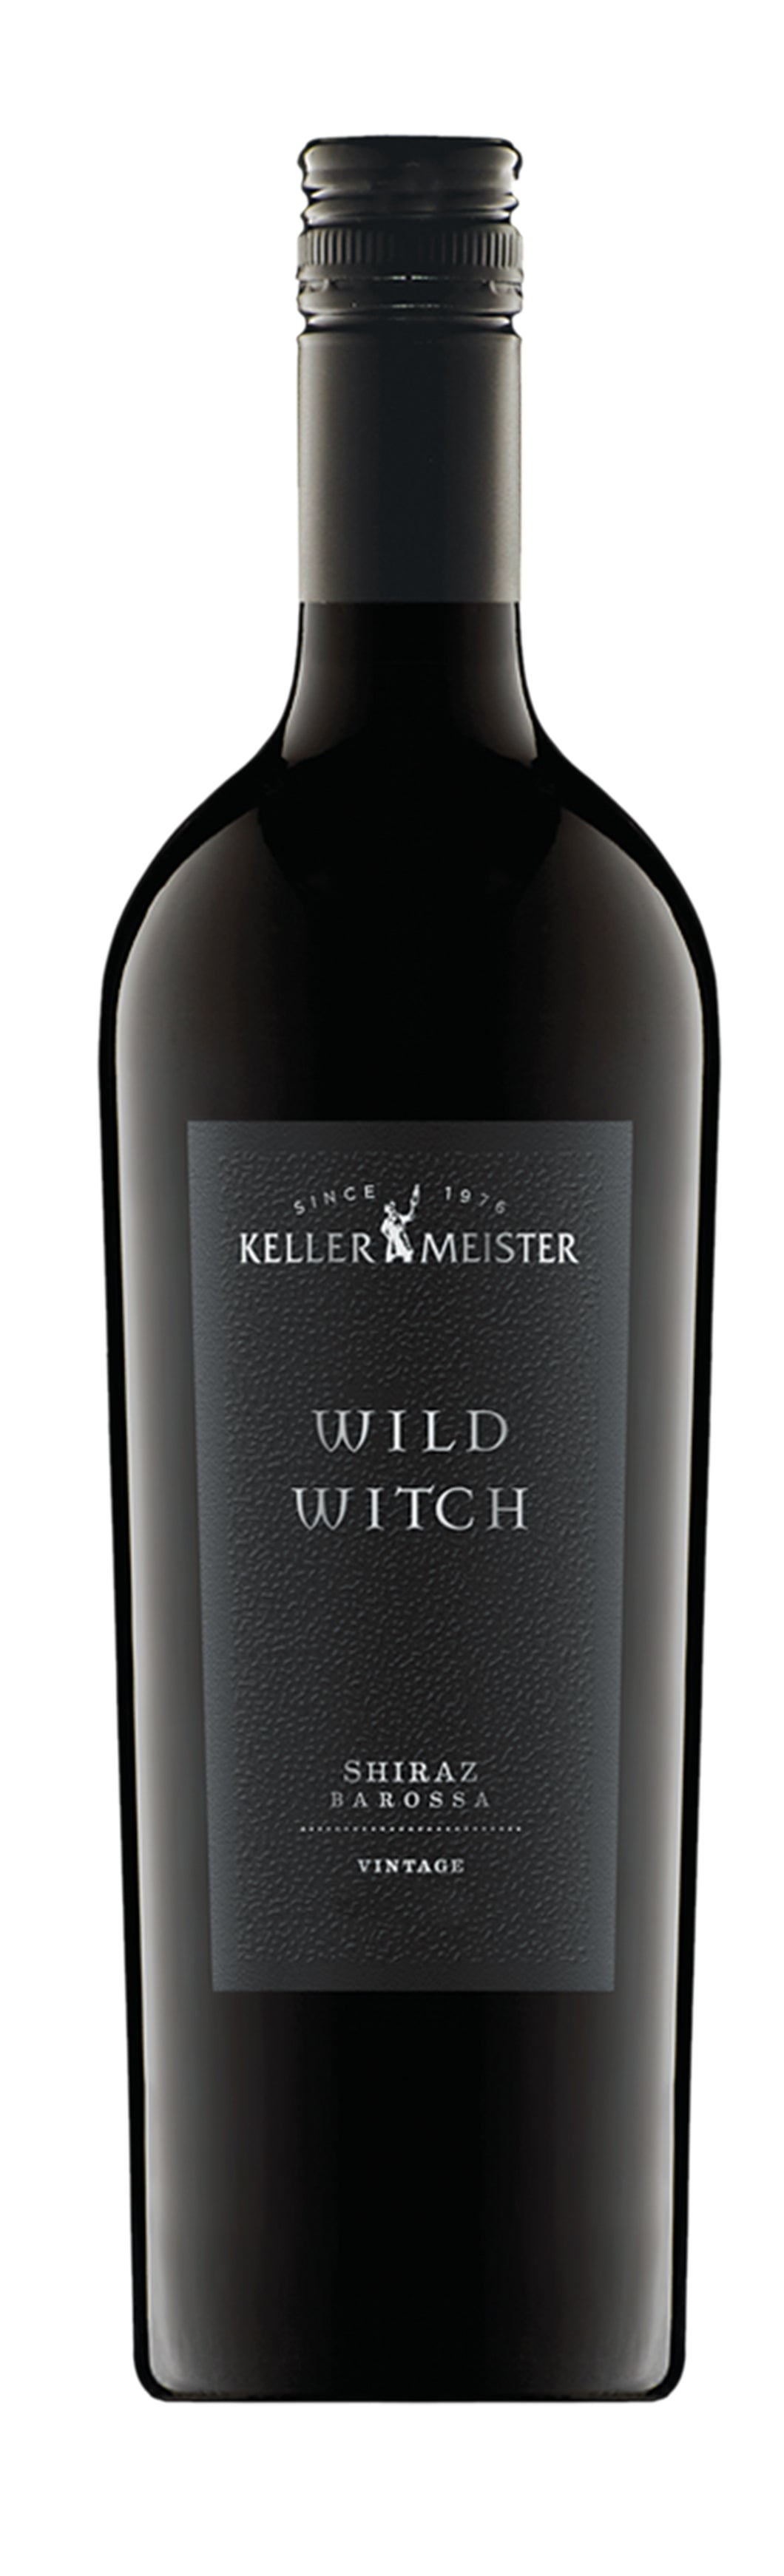 Kellermeister Wild Witch Shiraz 2015